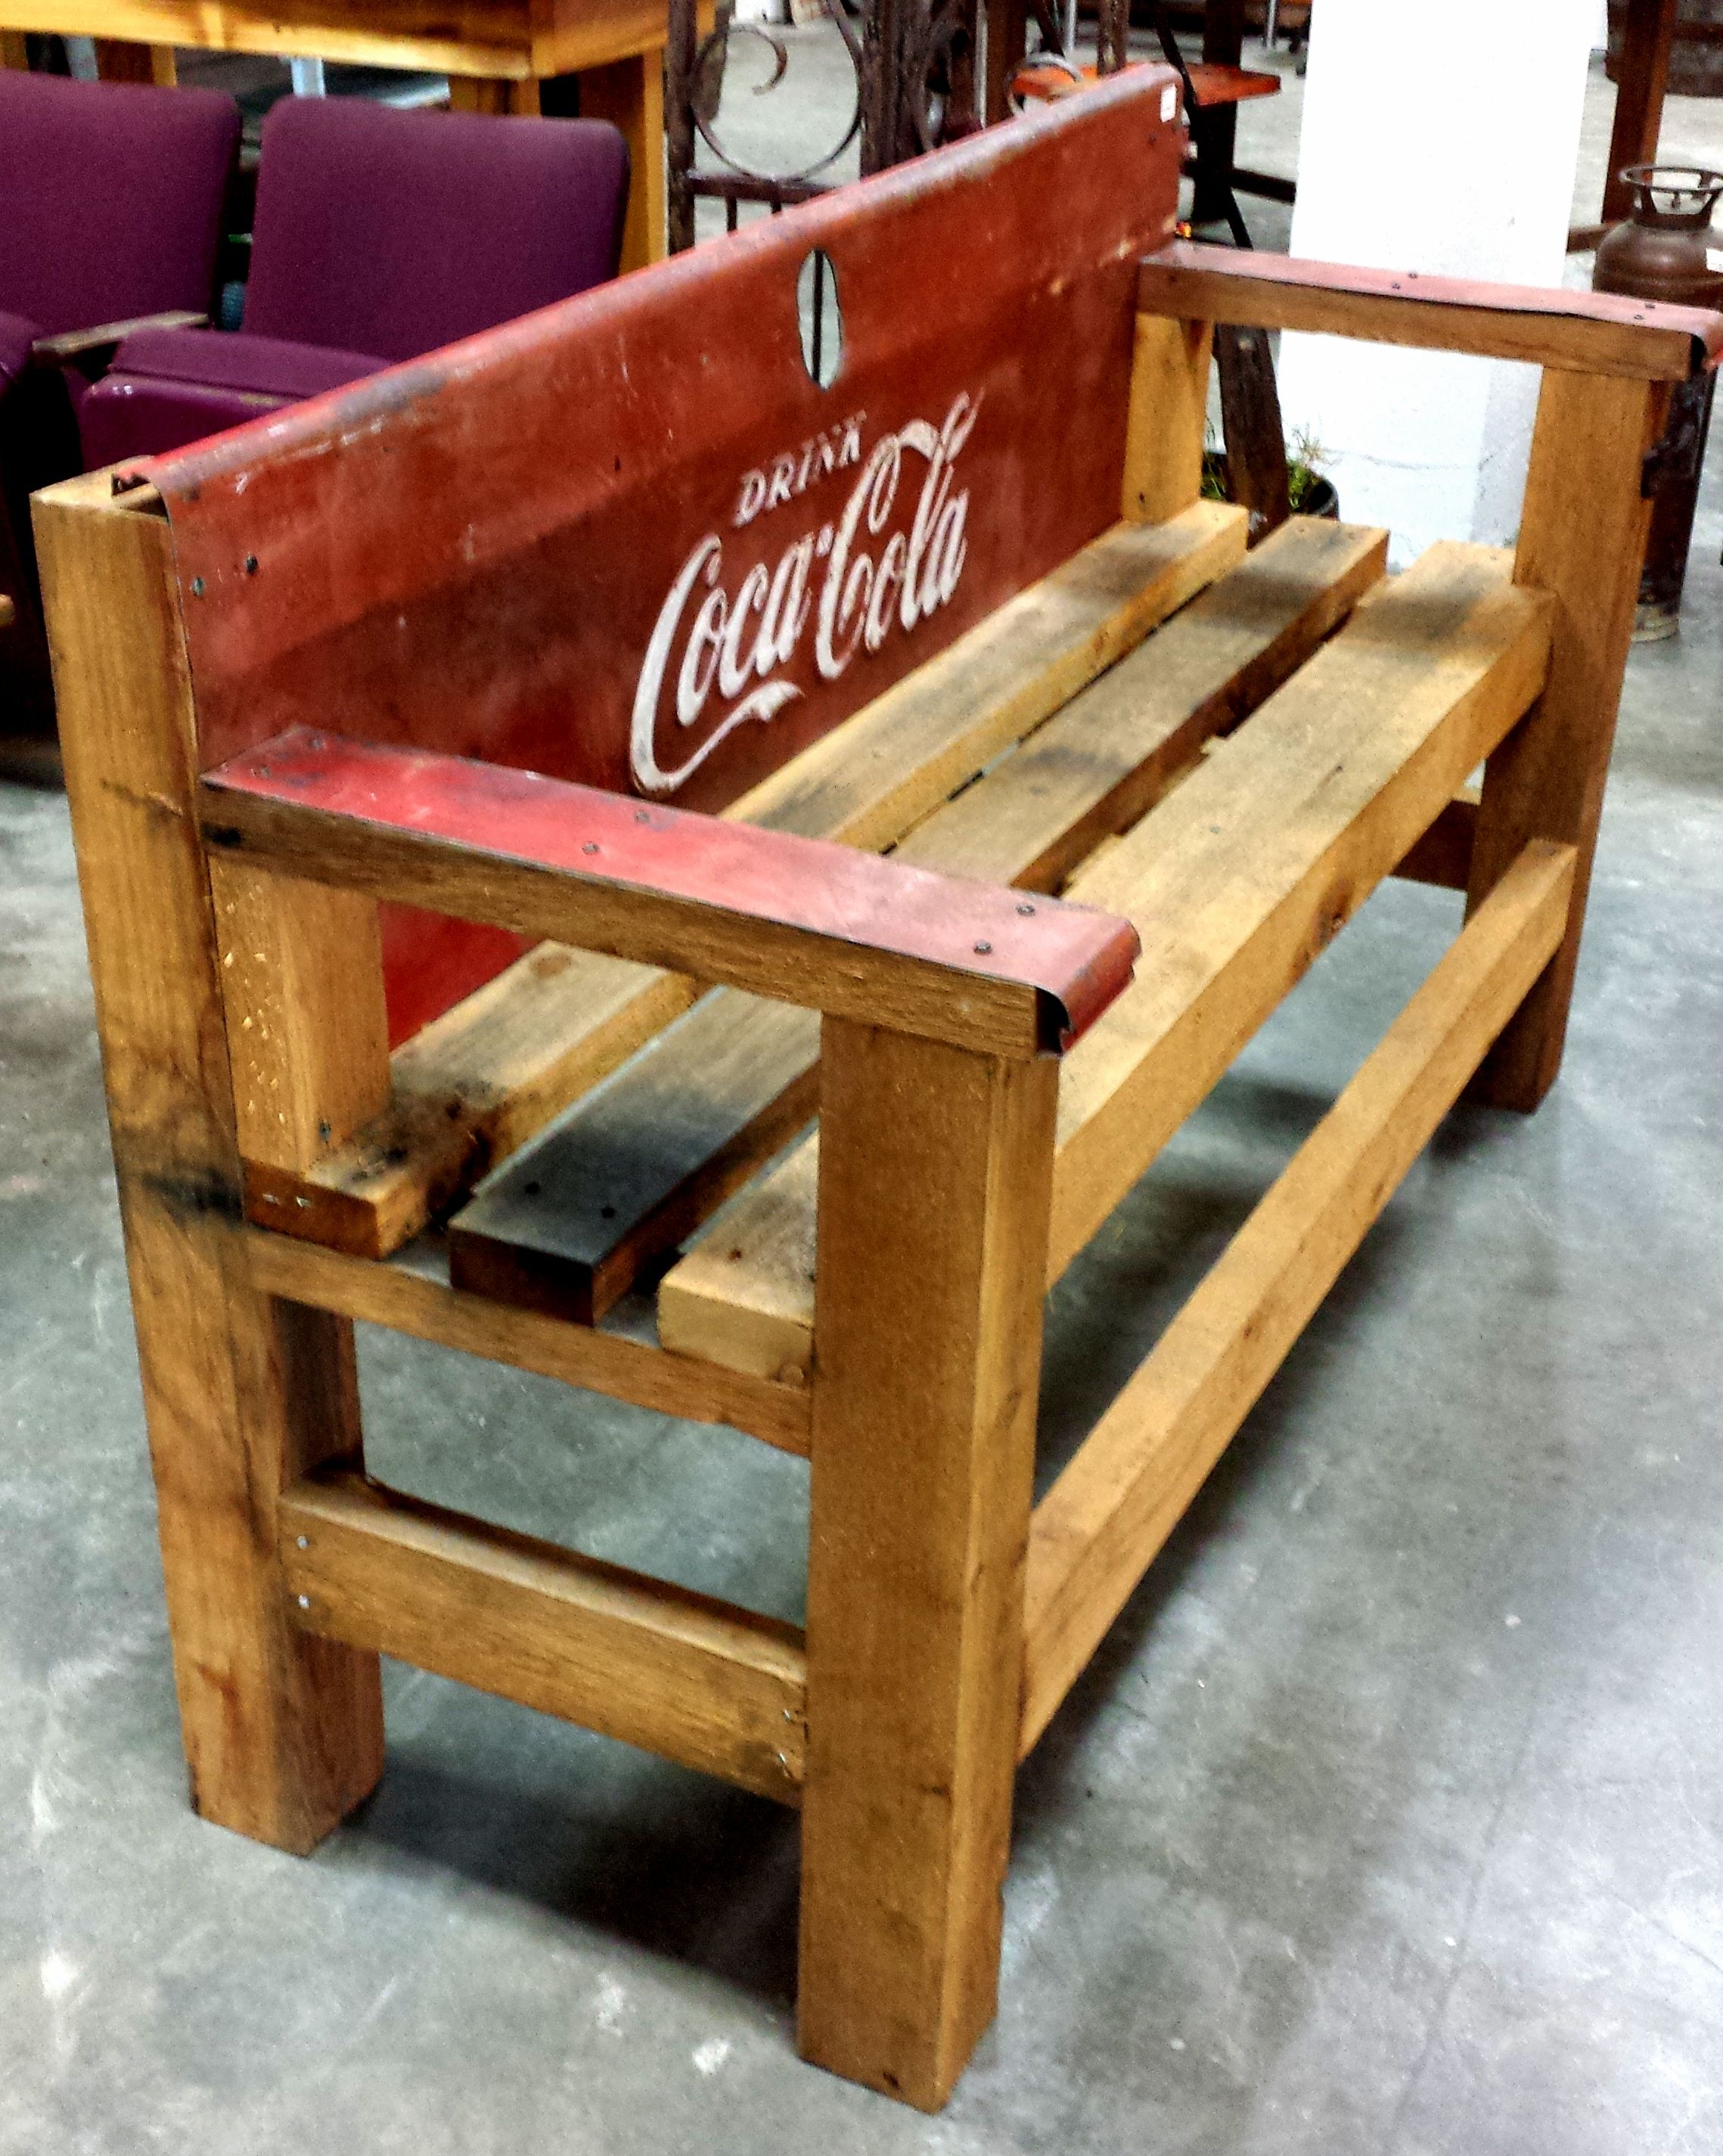 Awesome Upcycled Coca Cola Bench made from the from a ...